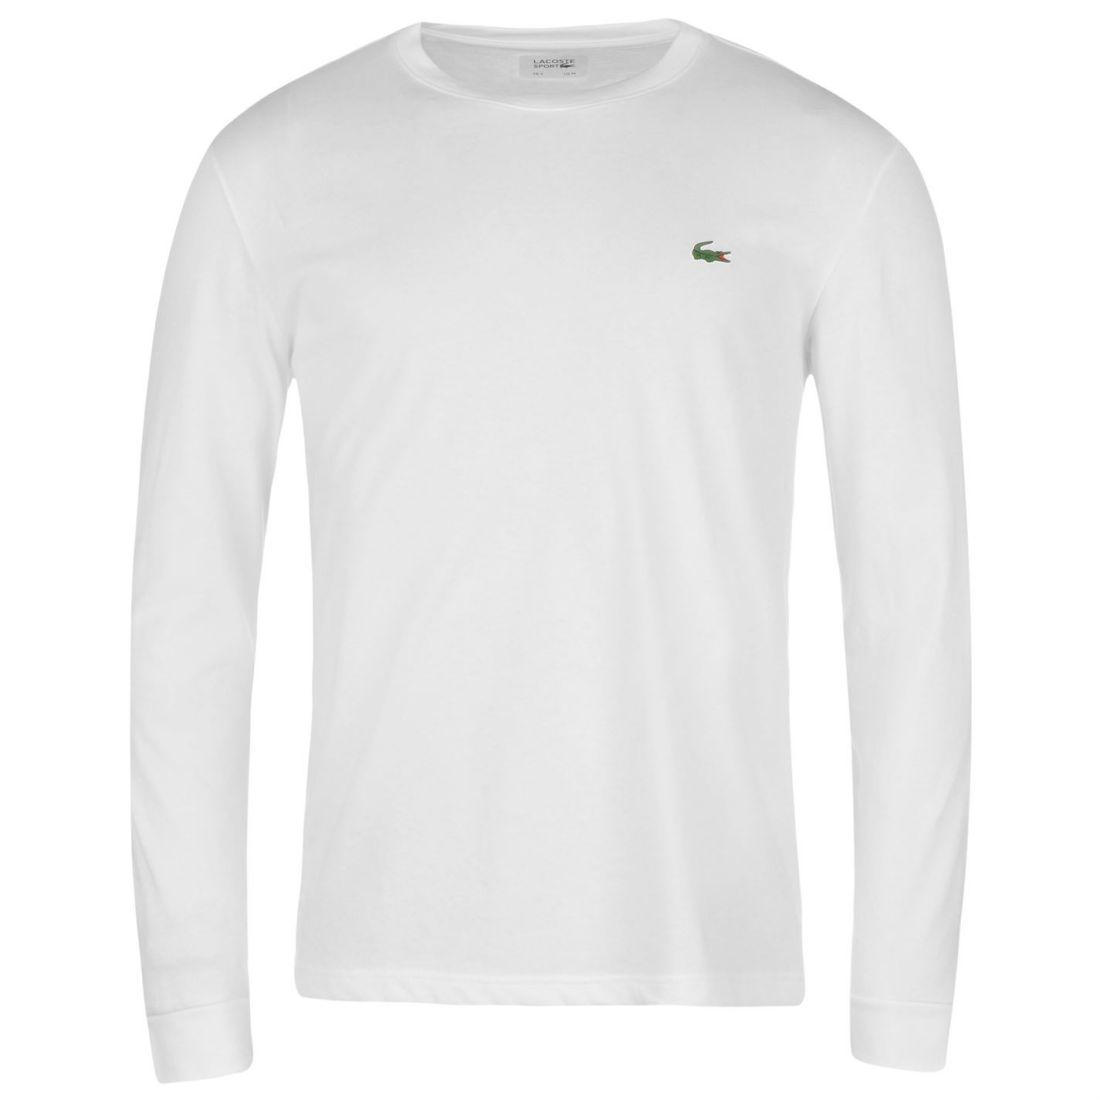 12e0c0449640 Image is loading Mens-Lacoste-Basic-Logo-Long-Sleeve-T-Shirt-